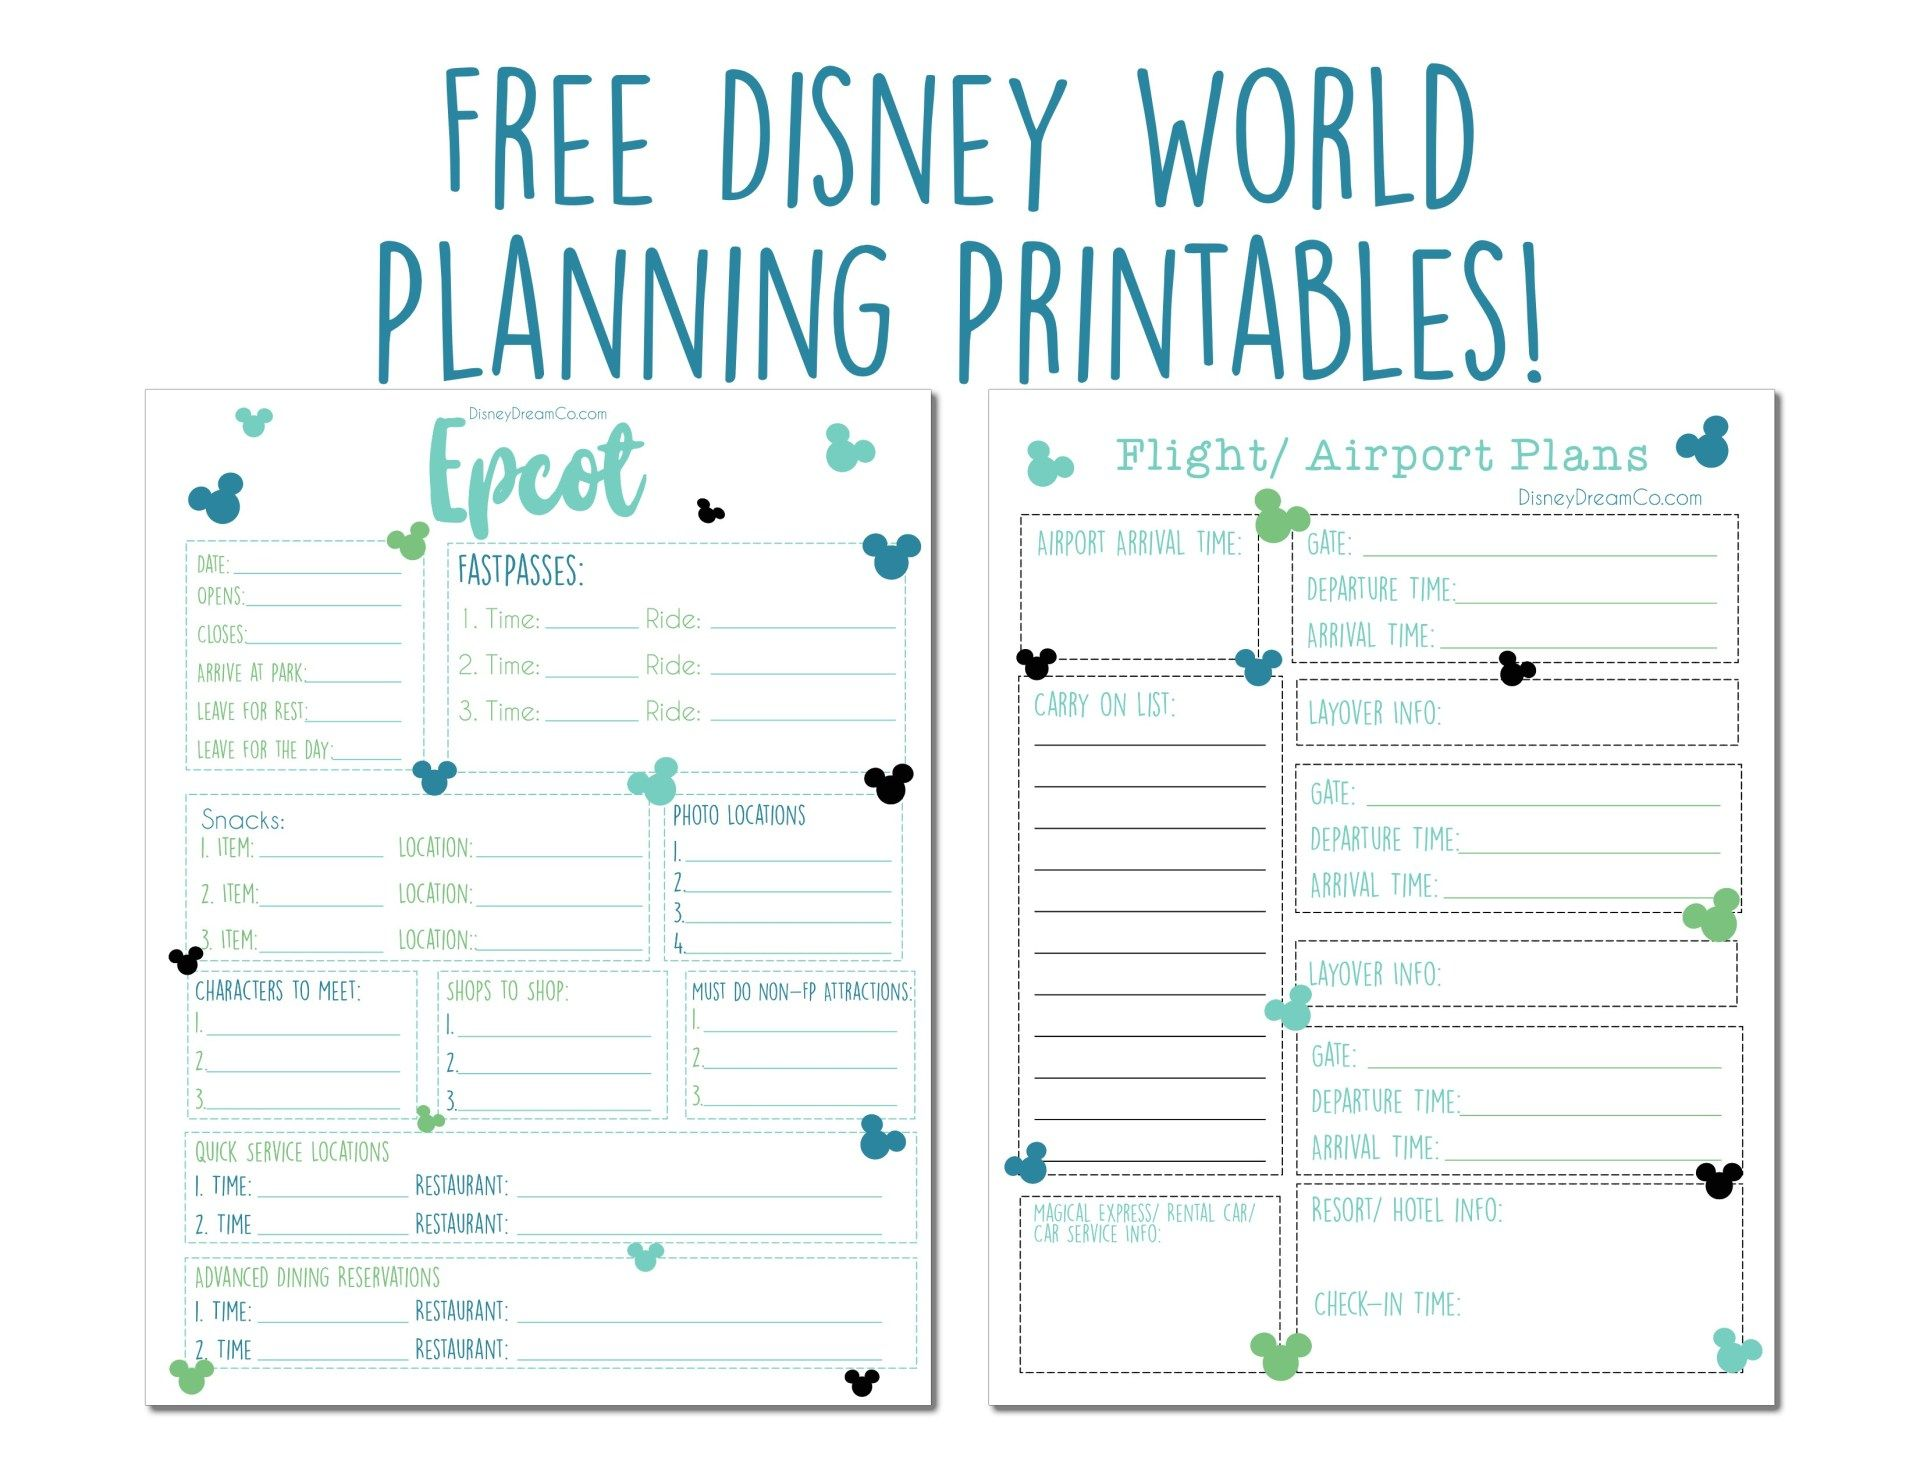 Disney World Free Planning Printables